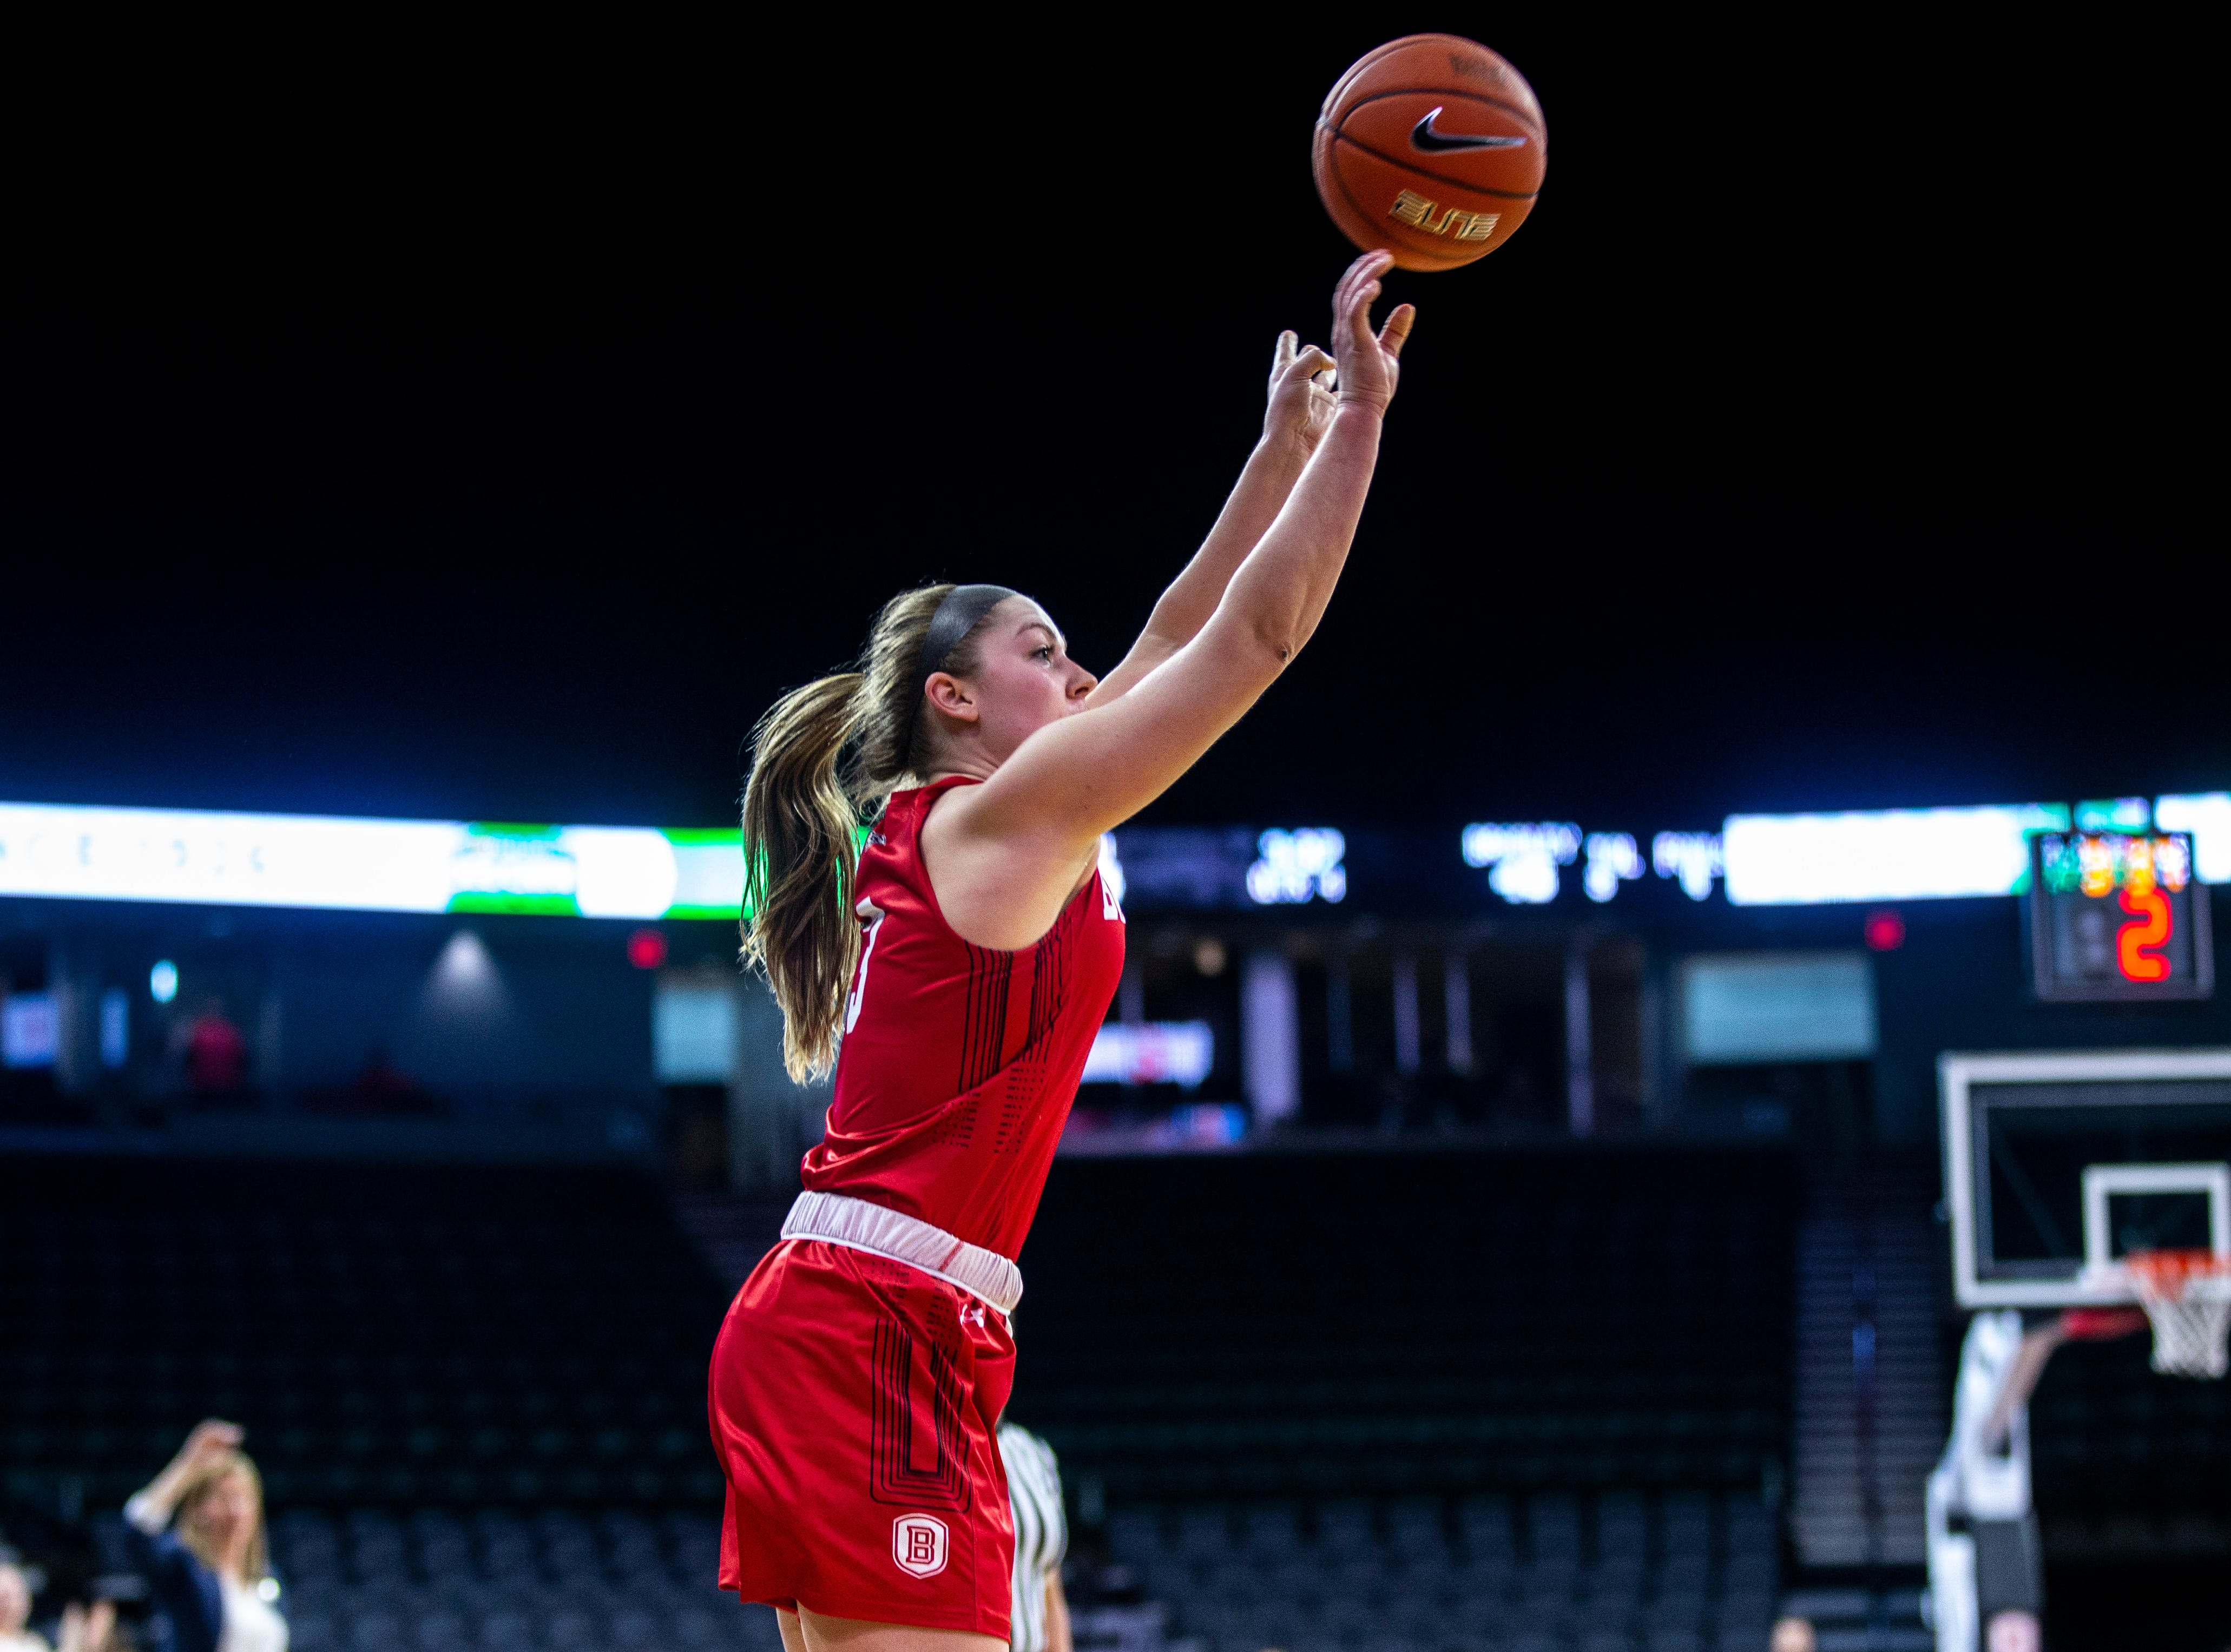 Bradley guard Aannah Interrante attempts a 3-point basket during a NCAA Missouri Valley Conference women's basketball quarterfinal tournament game, Friday, March 15, 2019, at the TaxSlayer Center in Moline, Illinois.